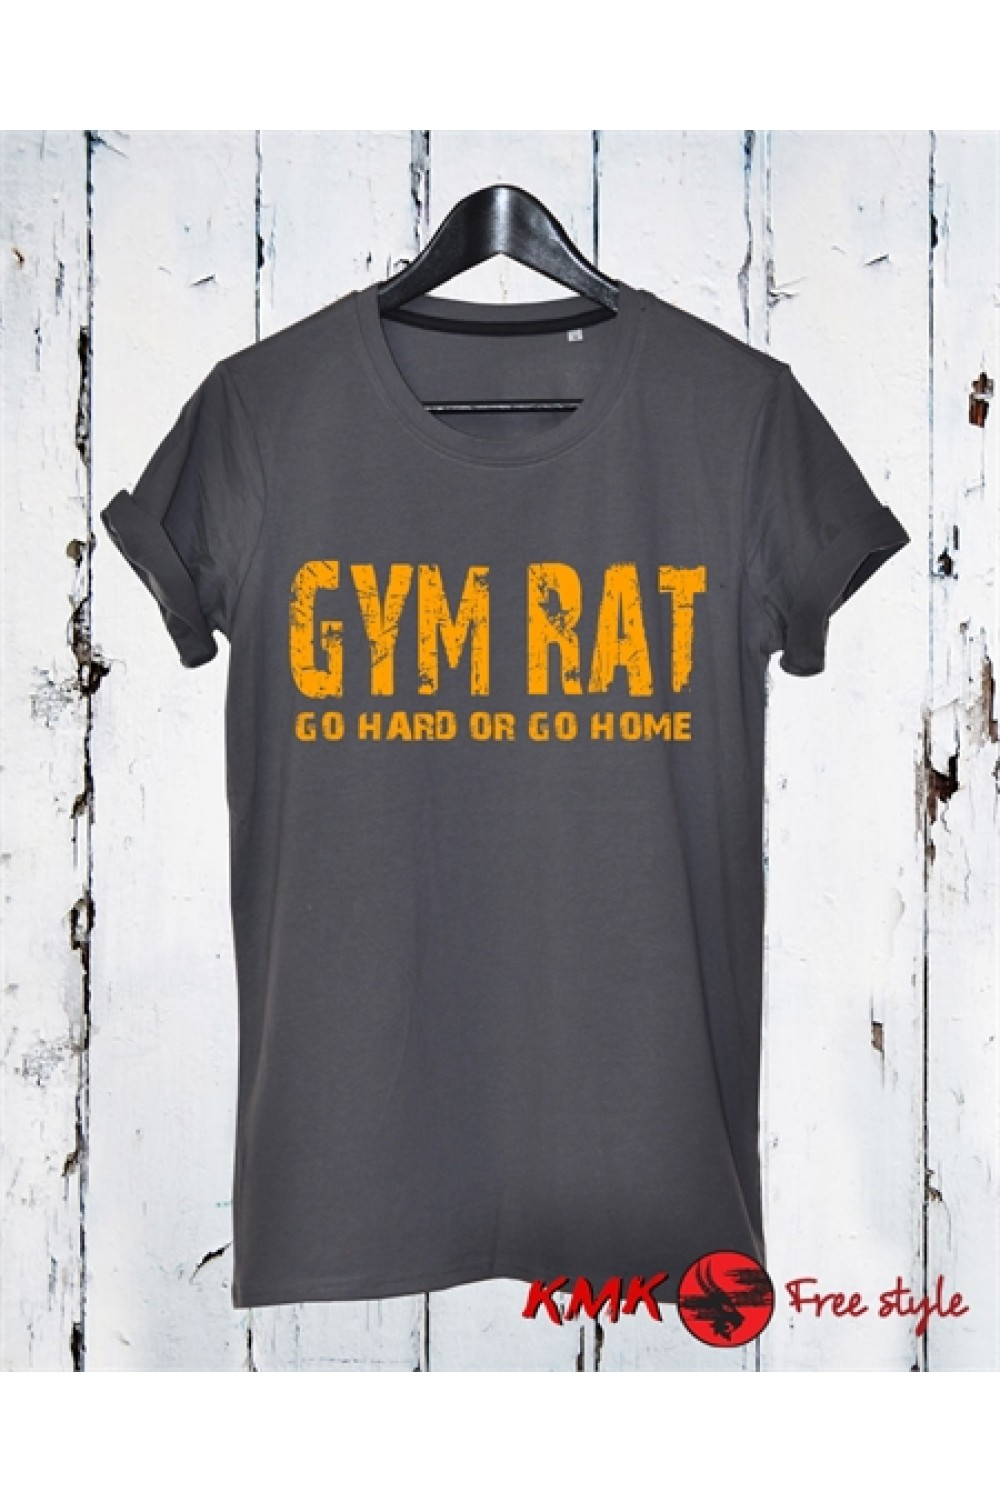 Gym Rat Printed T shirt | Go hard Tee | Gym T-shirt | Sports Tee